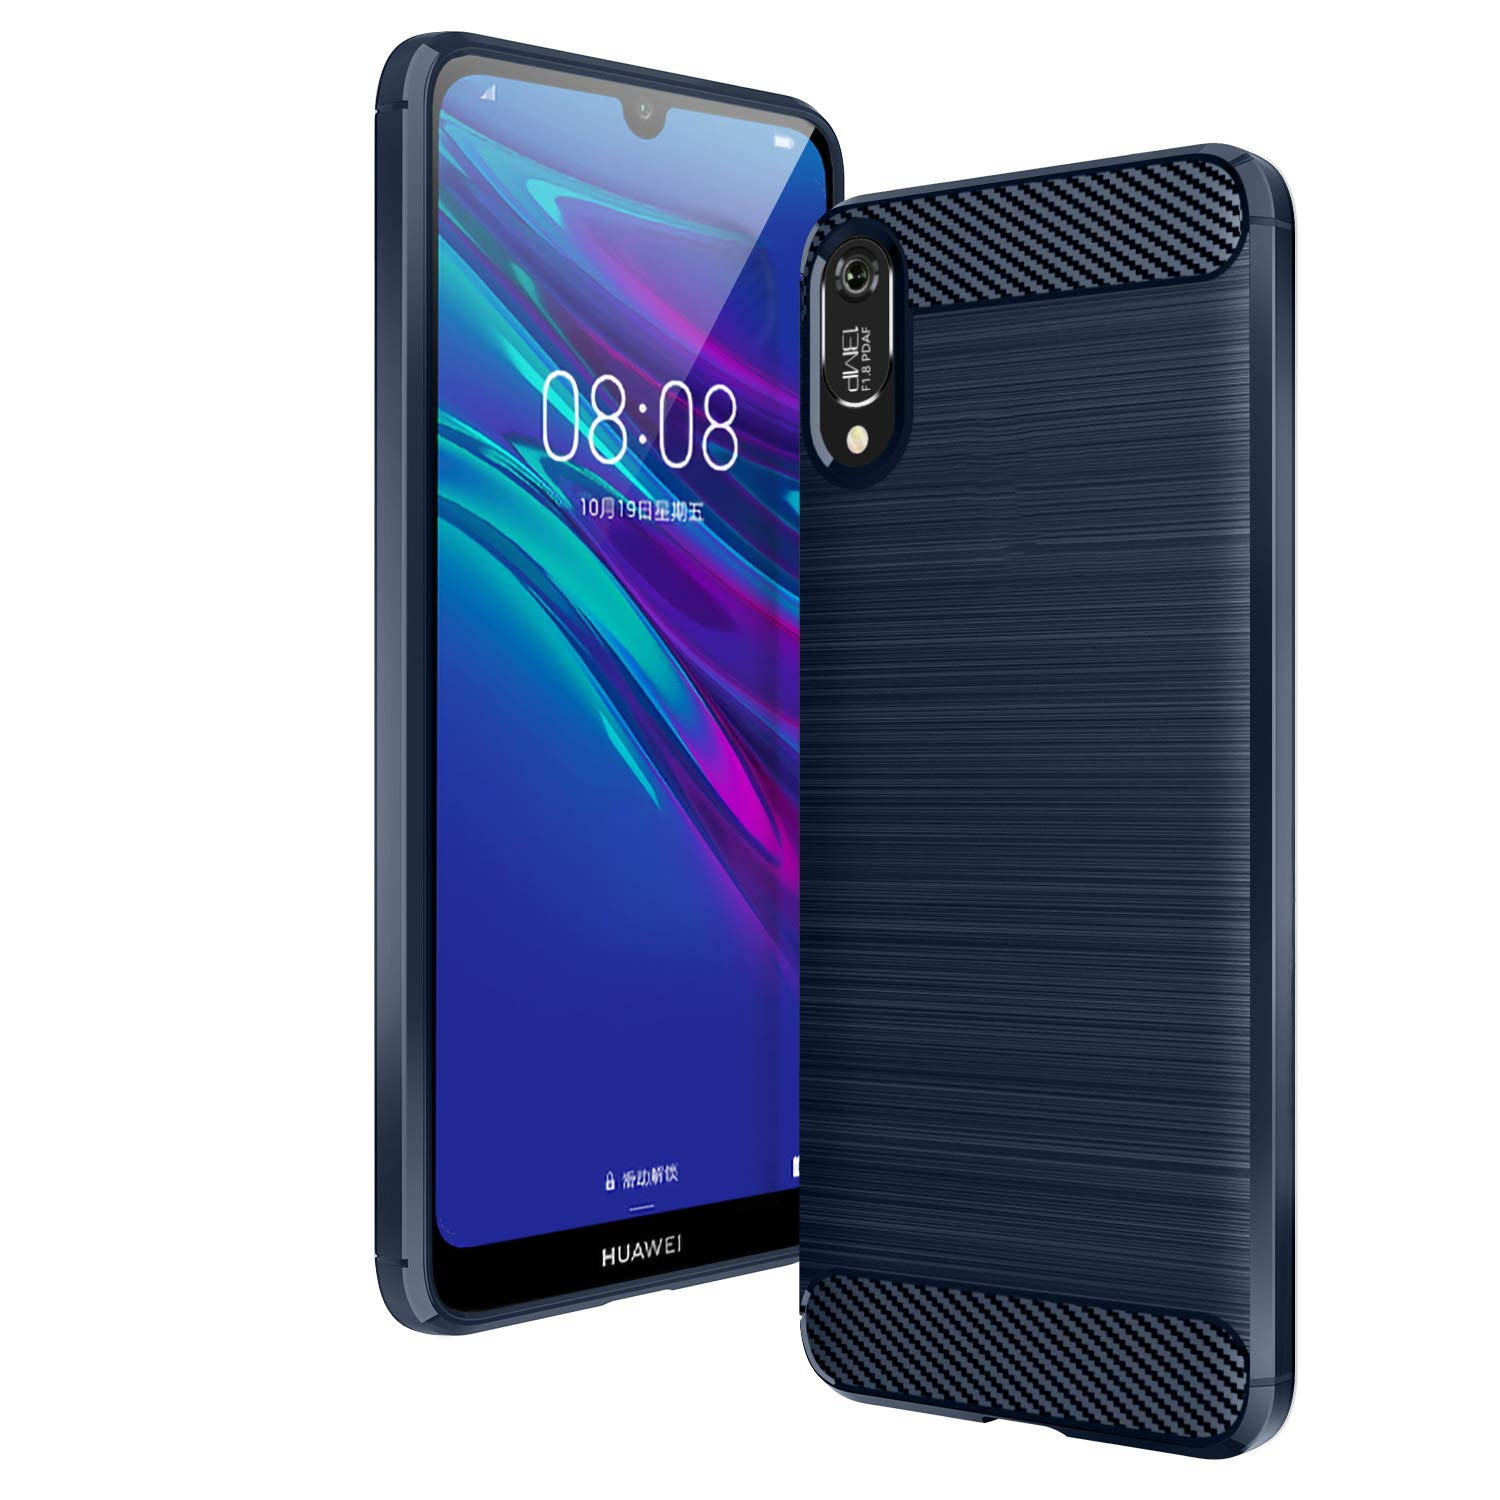 AIFIVE Huawei Y6 2019 Case, Shock Absorption Cover Soft TPU Anti Scratch Carbon Fiber Case for Huawei Y6 2019 (Blue)